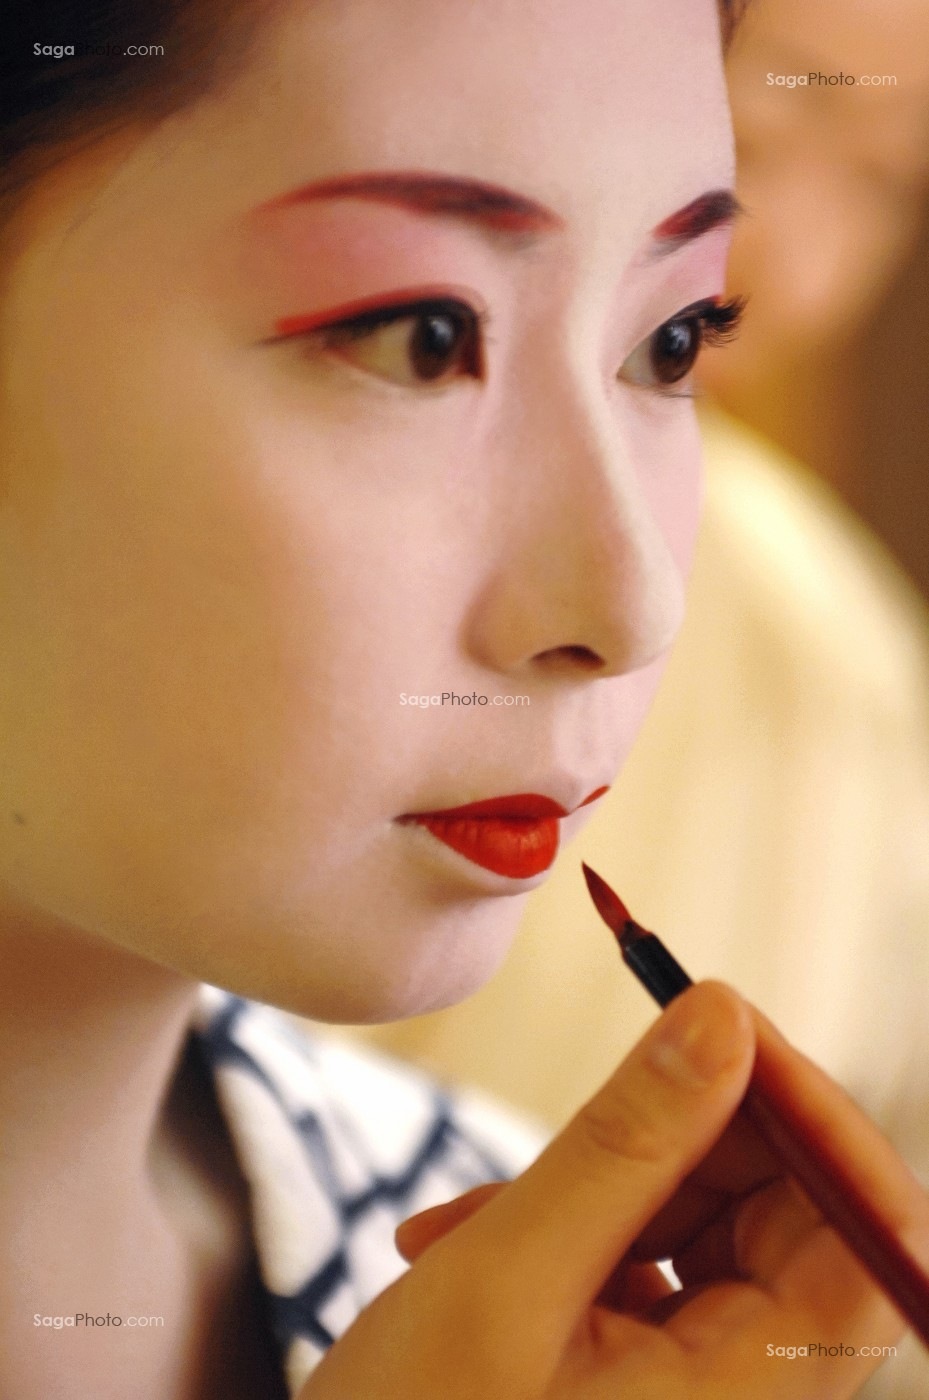 MAQUILLAGE TRADITIONNEL (DORAN) D\u0027UNE GEISHA, GION, KYOTO, JAPON